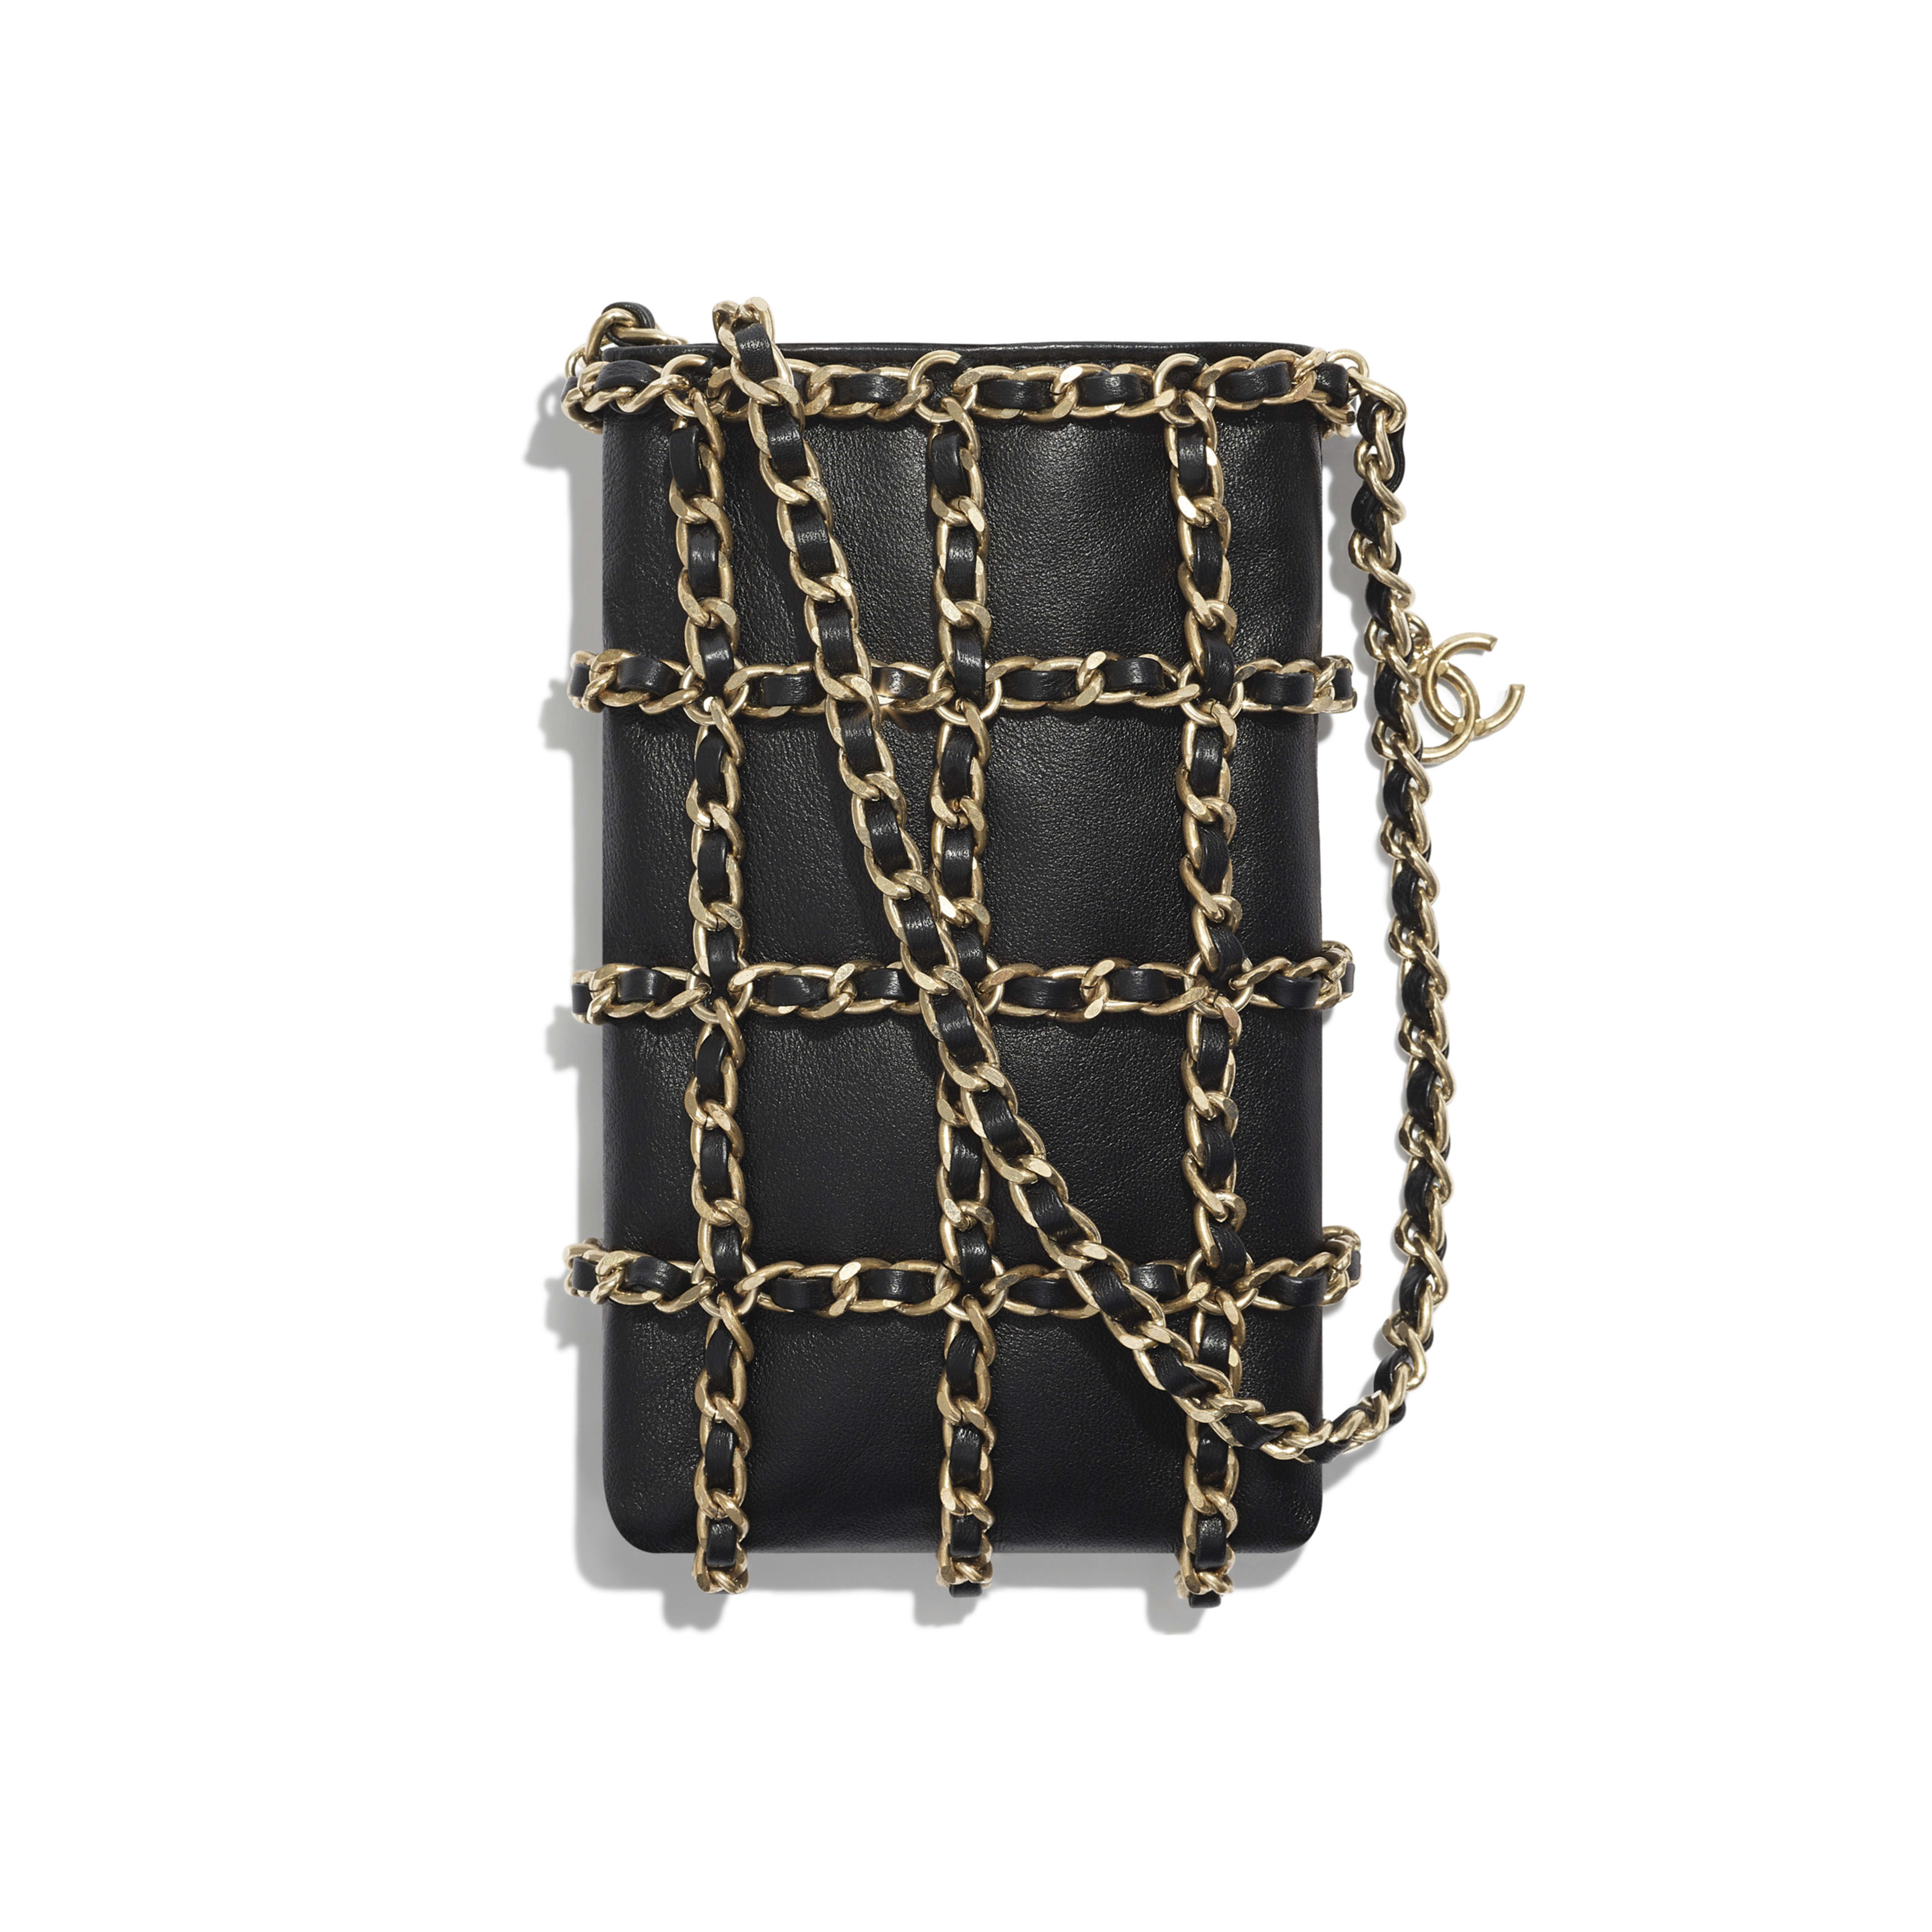 Clutch With Chain - Black - Lambskin - Alternative view - see full sized version